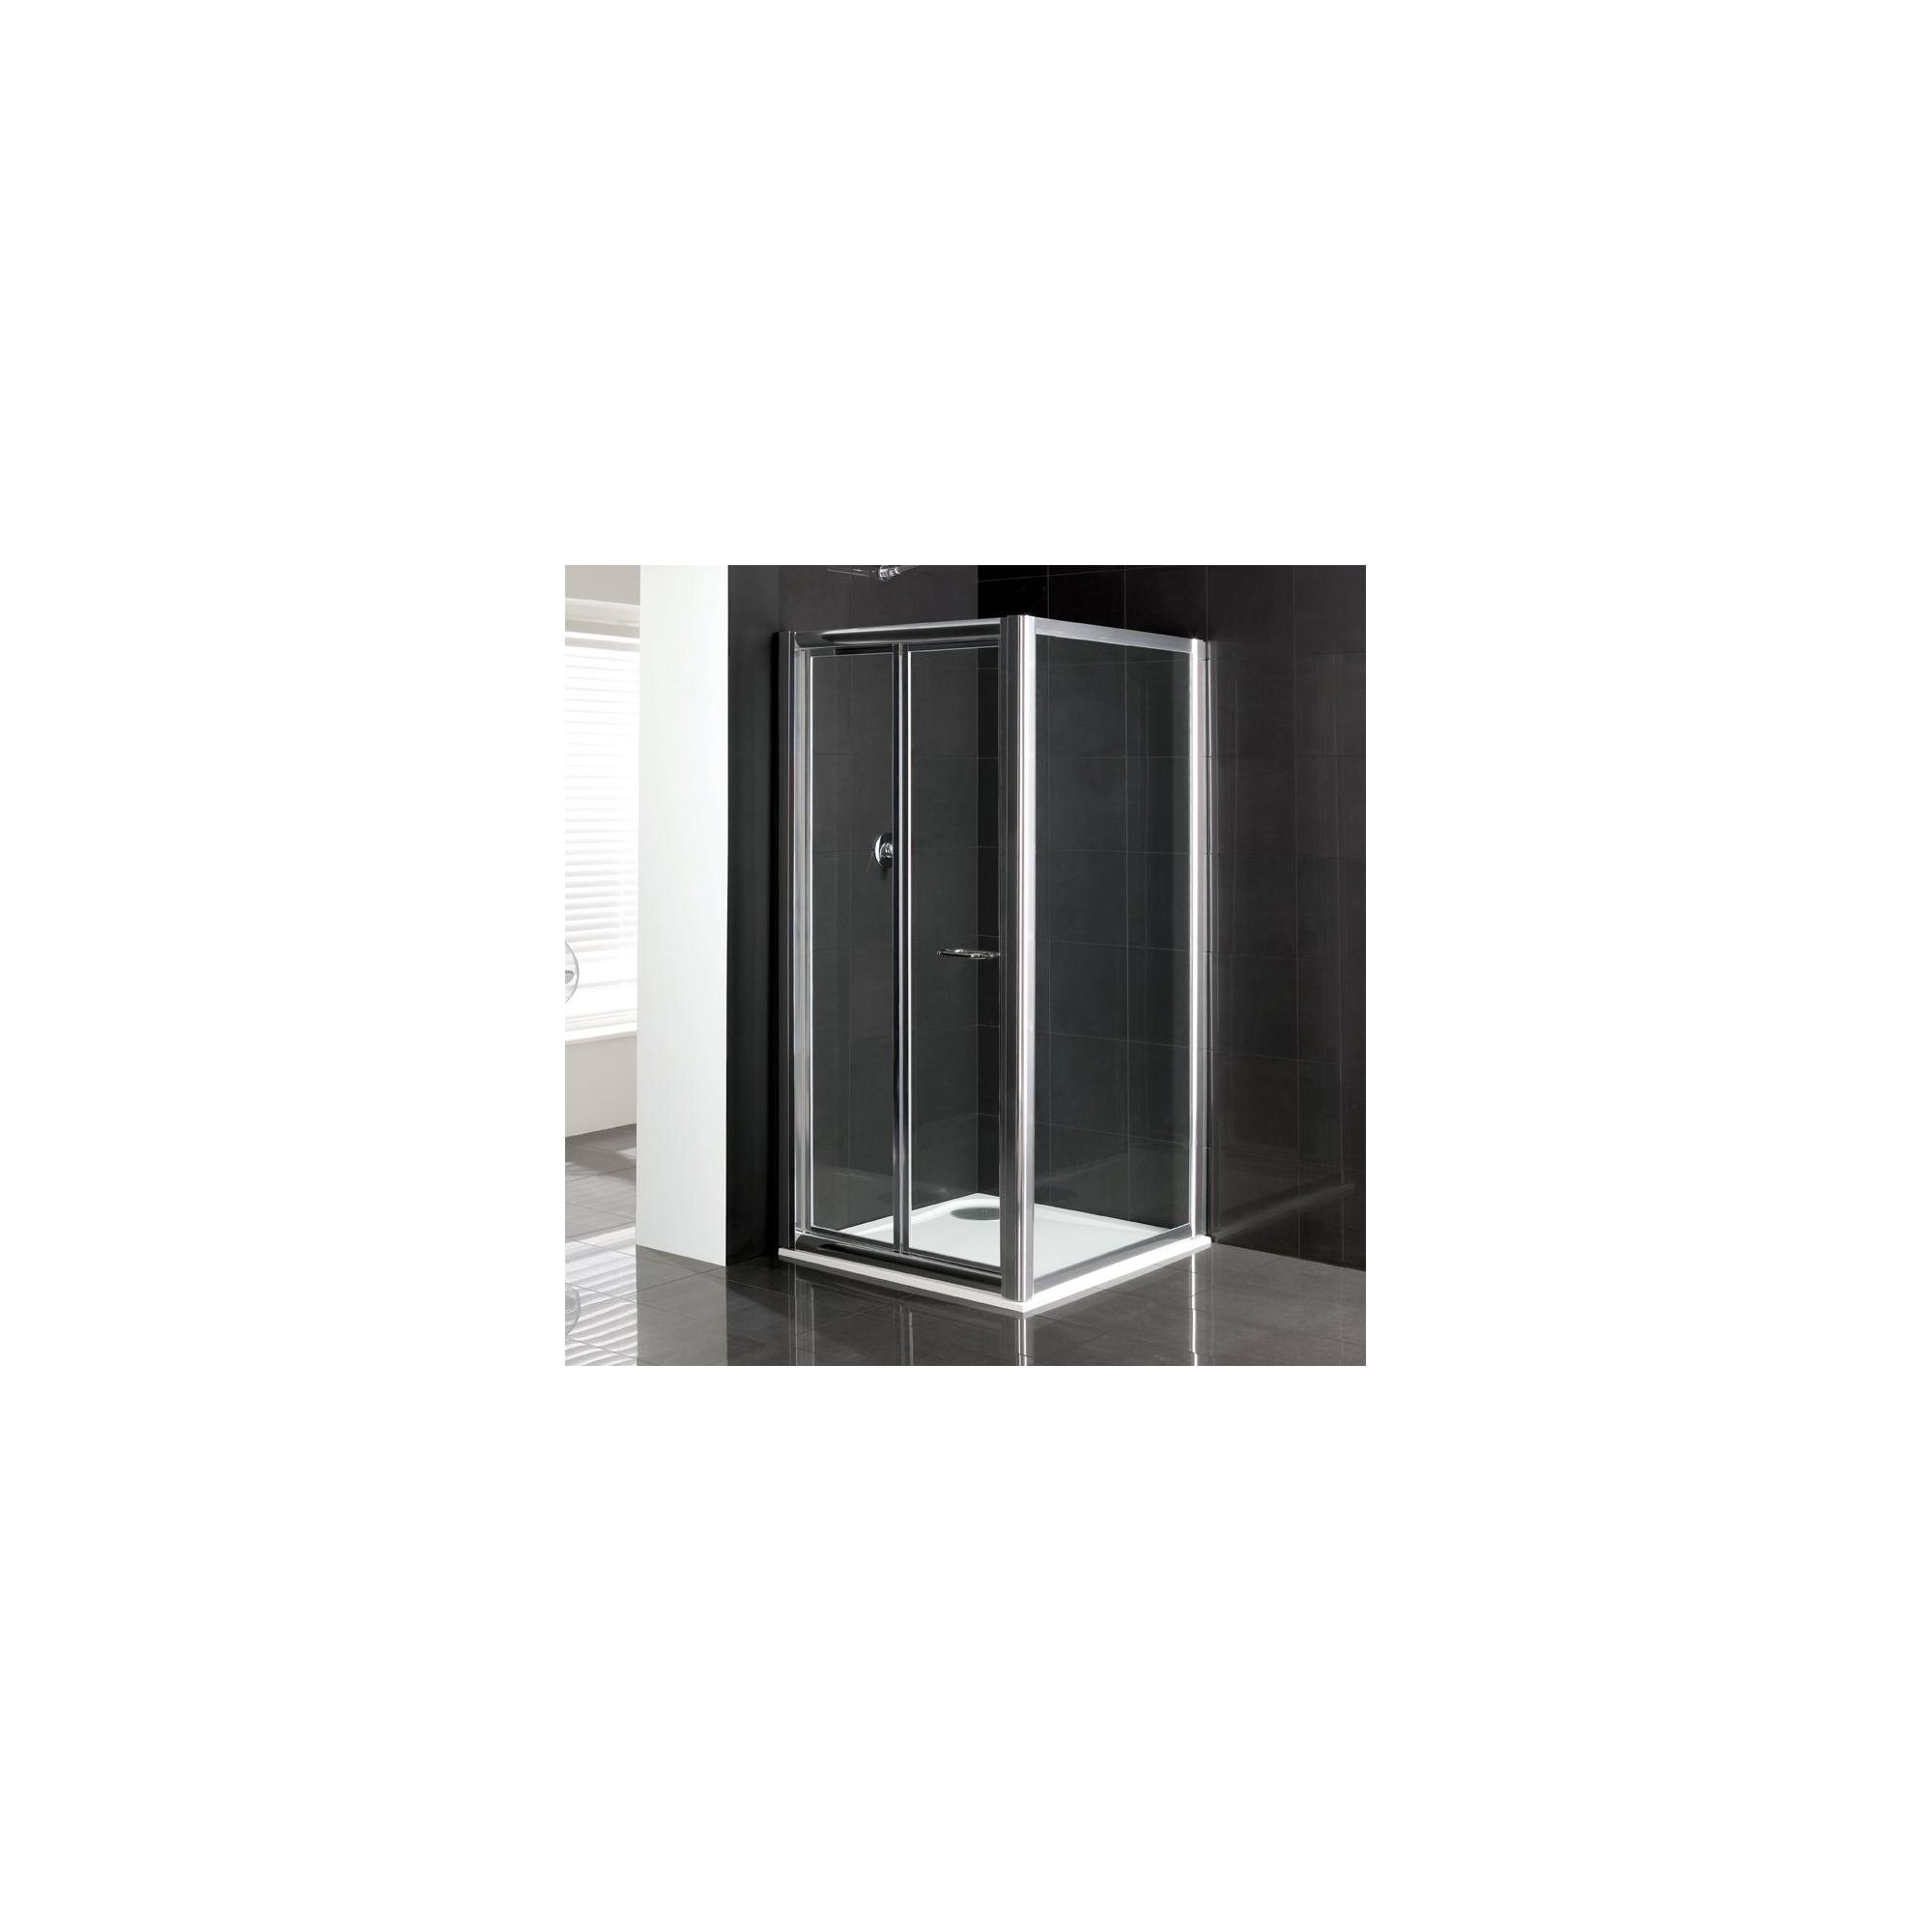 Duchy Elite Silver Bi-Fold Door Shower Enclosure with Towel Rail, 1000mm x 700mm, Standard Tray, 6mm Glass at Tesco Direct